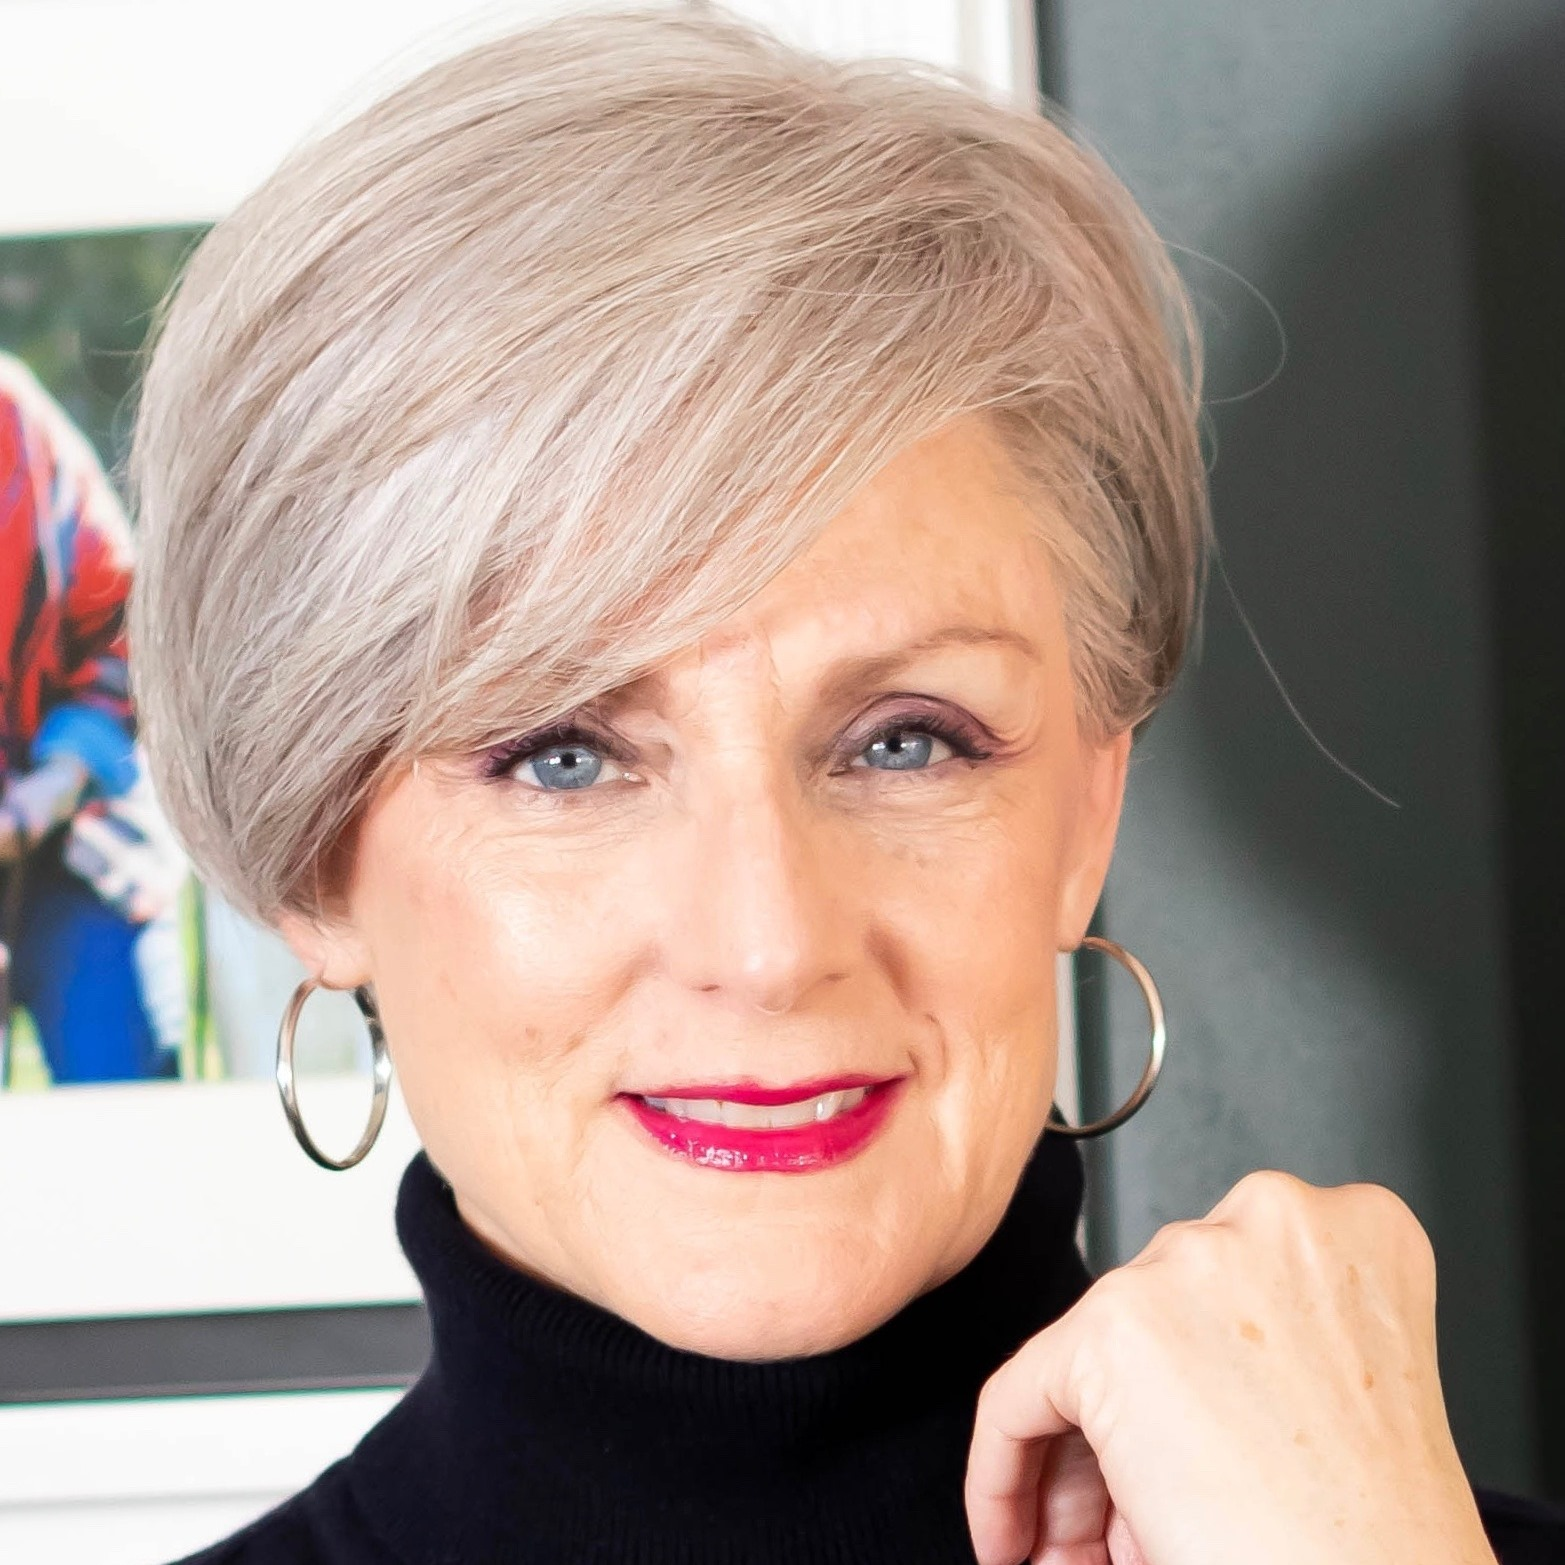 Best Influencers Over 40, Including Beth Djalali of Style at a Certain Age